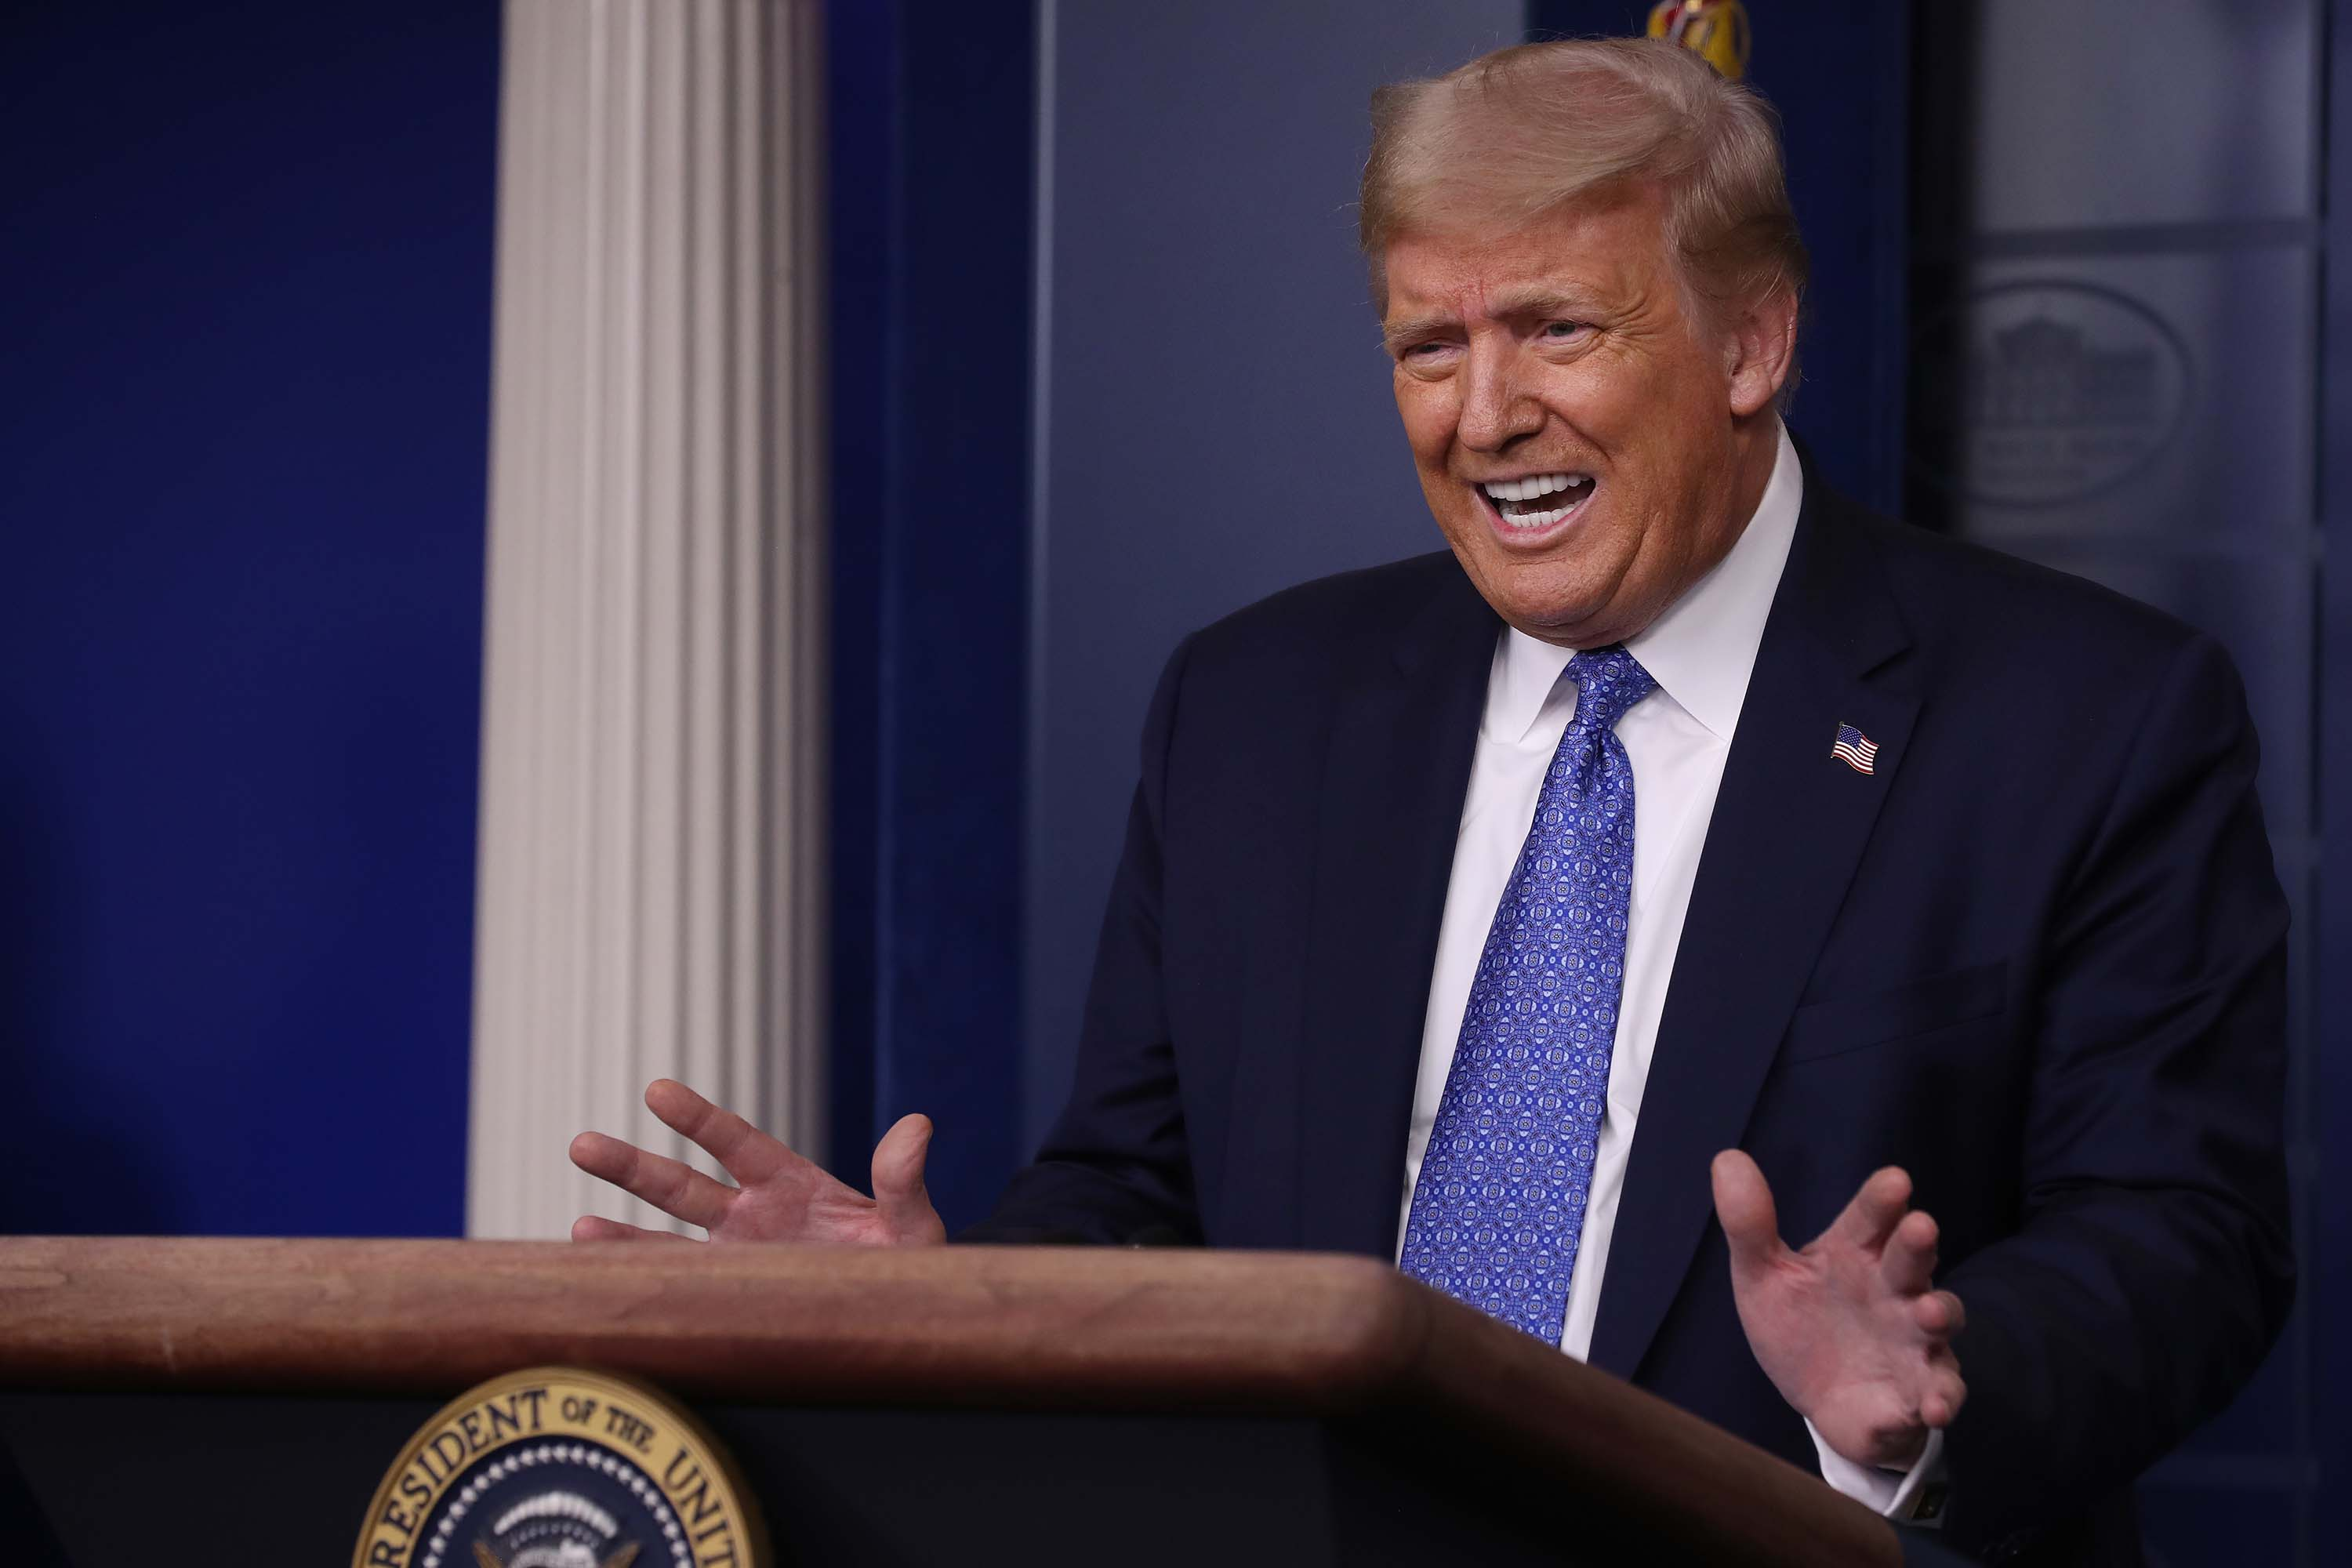 President Donald Trump talks to journalists during a July 22 news conference at the White House about his administration's response to the ongoing global coronavirus pandemic.